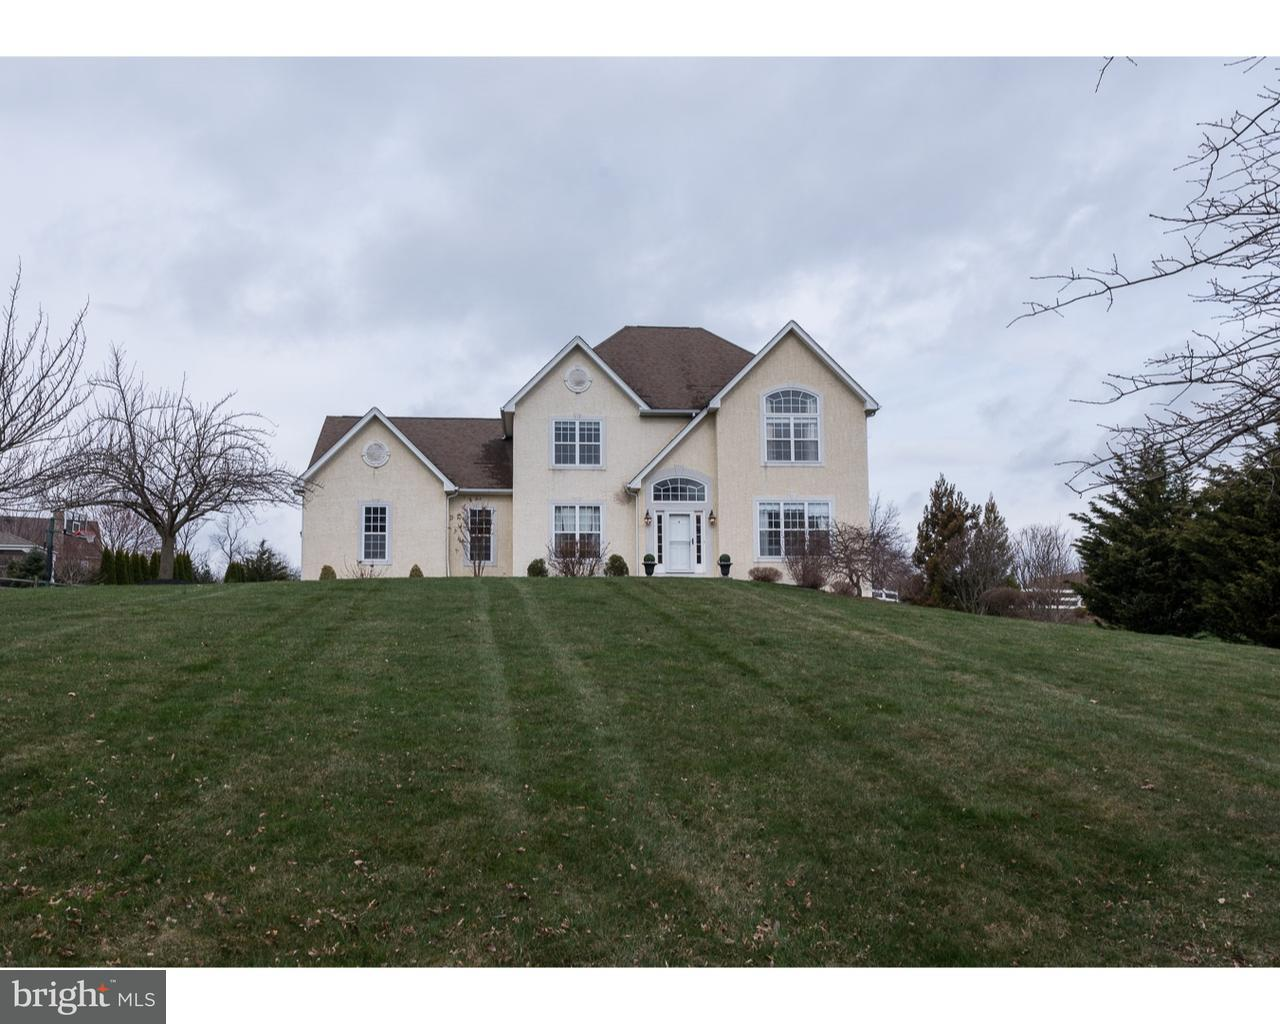 111 WALNUT DR, LINCOLN UNIVERSITY - Listed at $400,000, LINCOLN UNIVERSITY